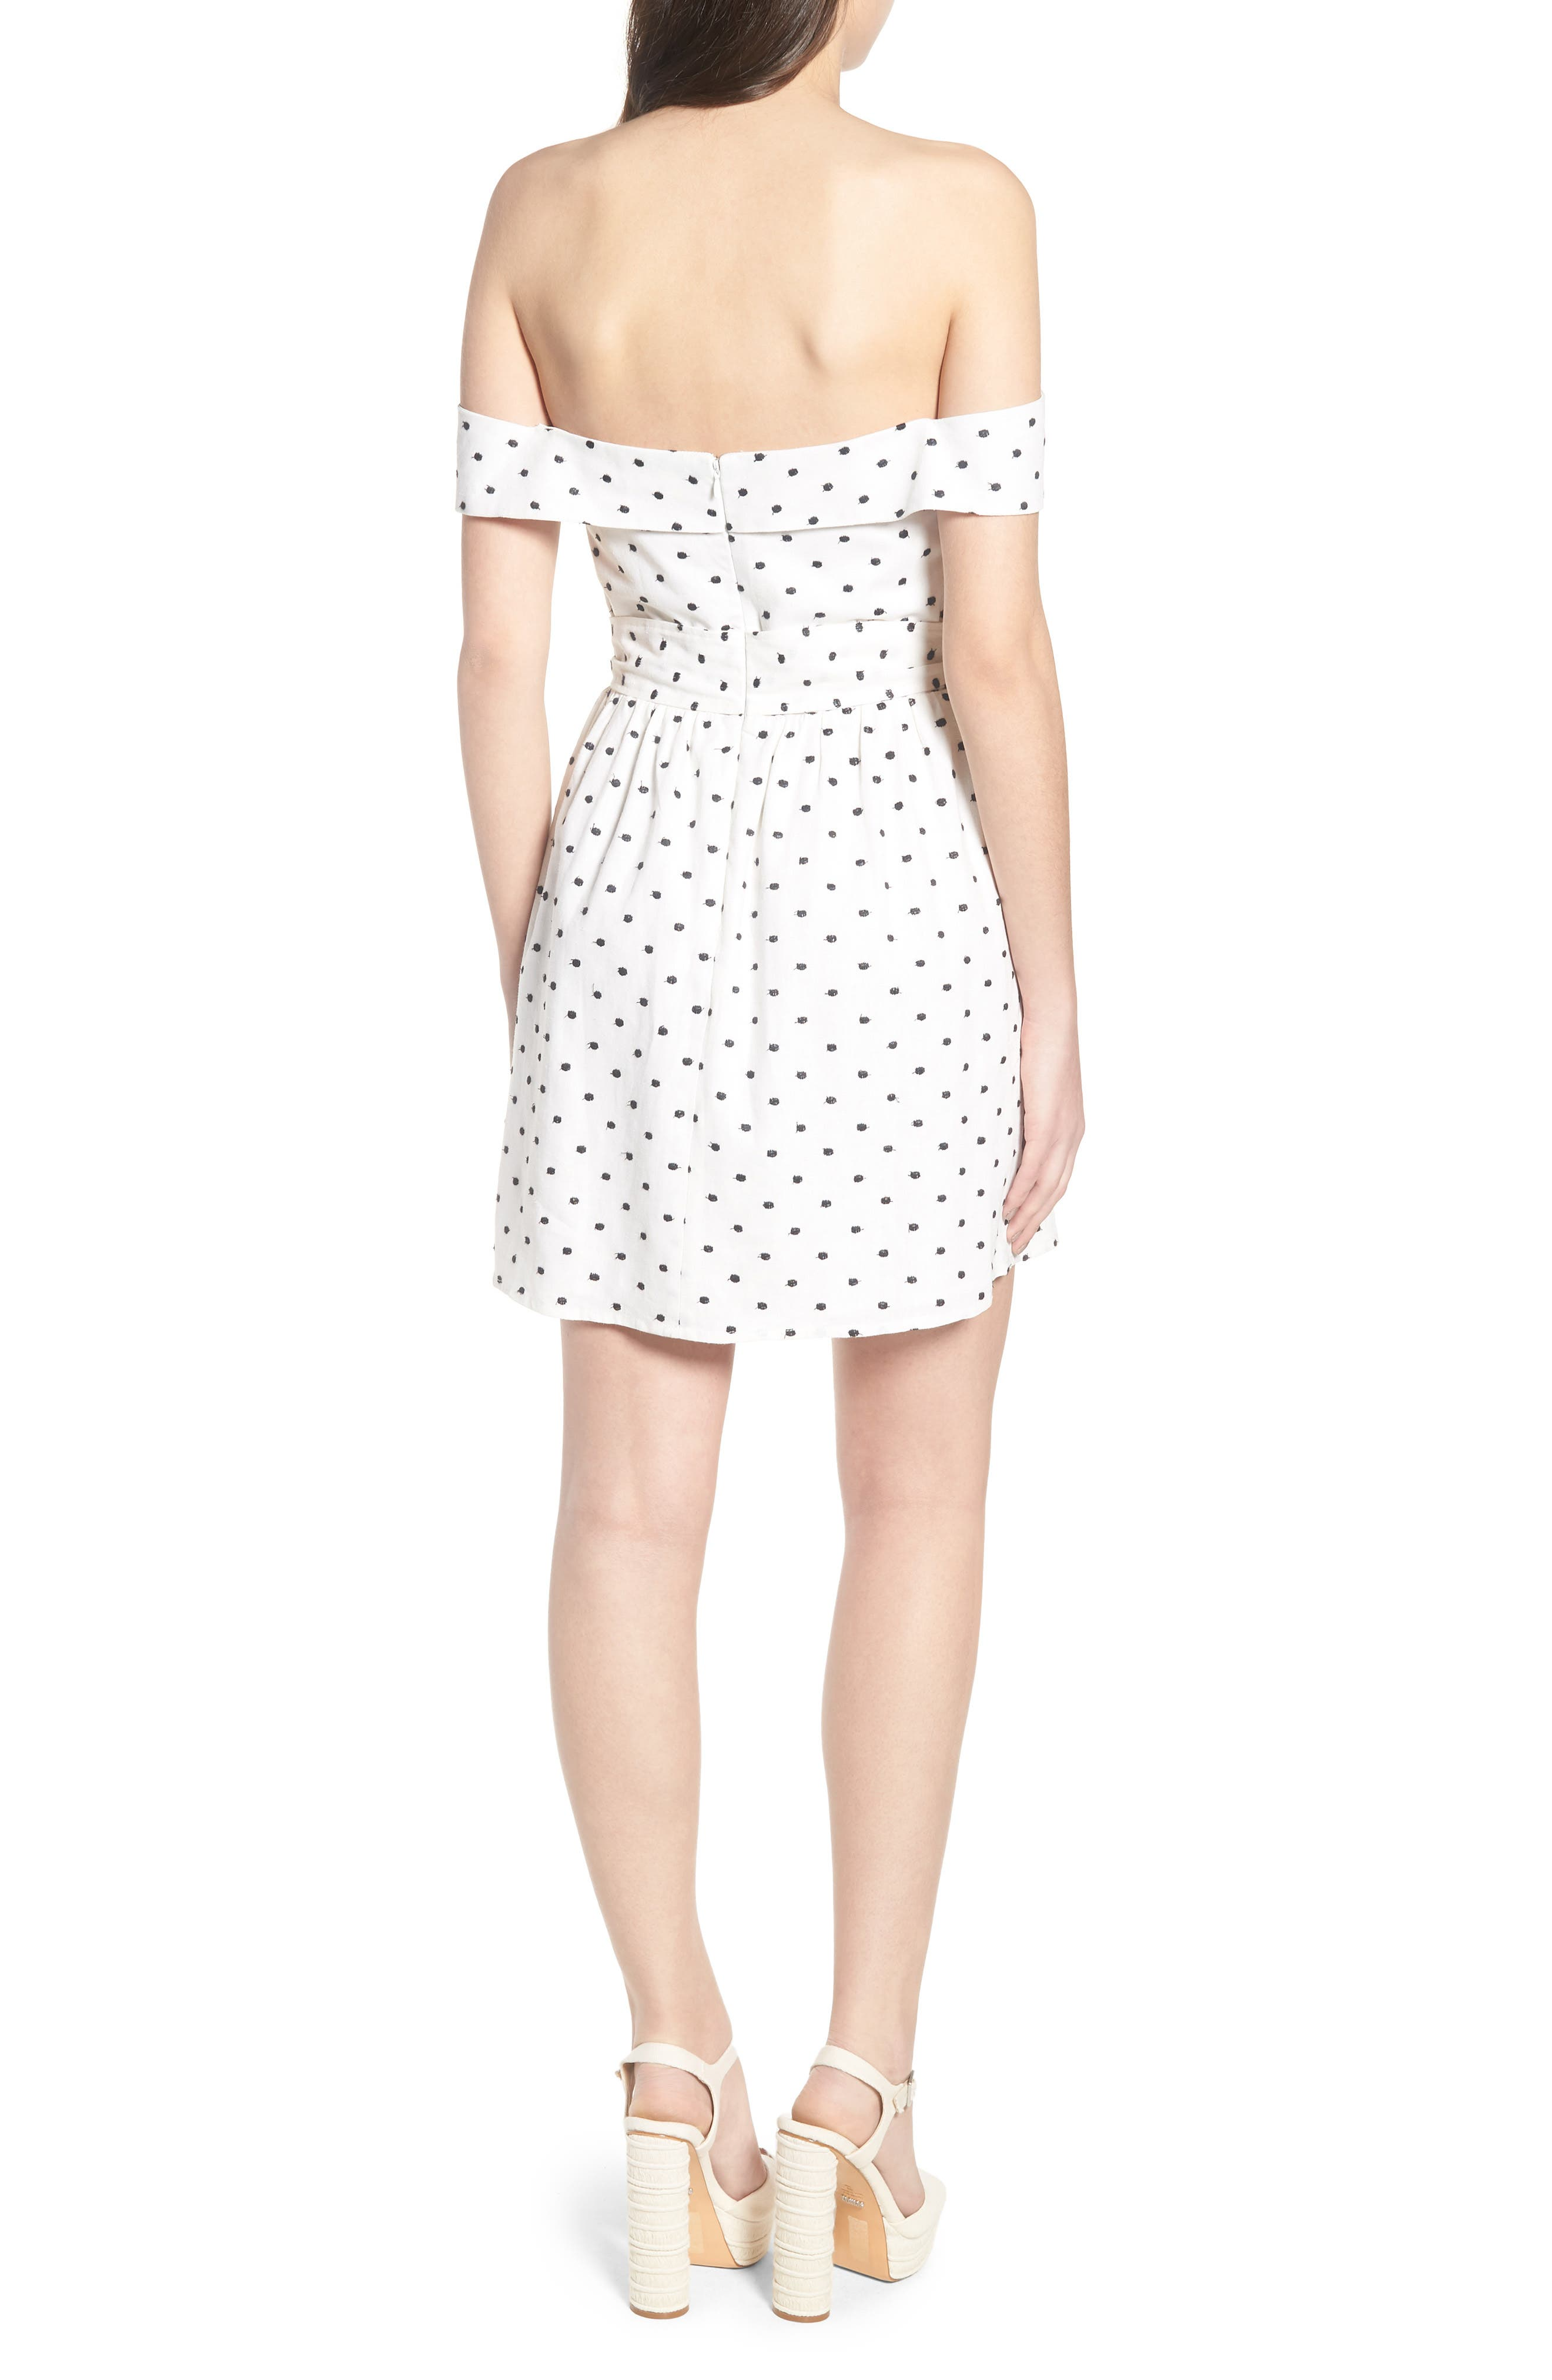 Capri Knot Cutout Minidress,                             Alternate thumbnail 3, color,                             Ivory Polka Dot